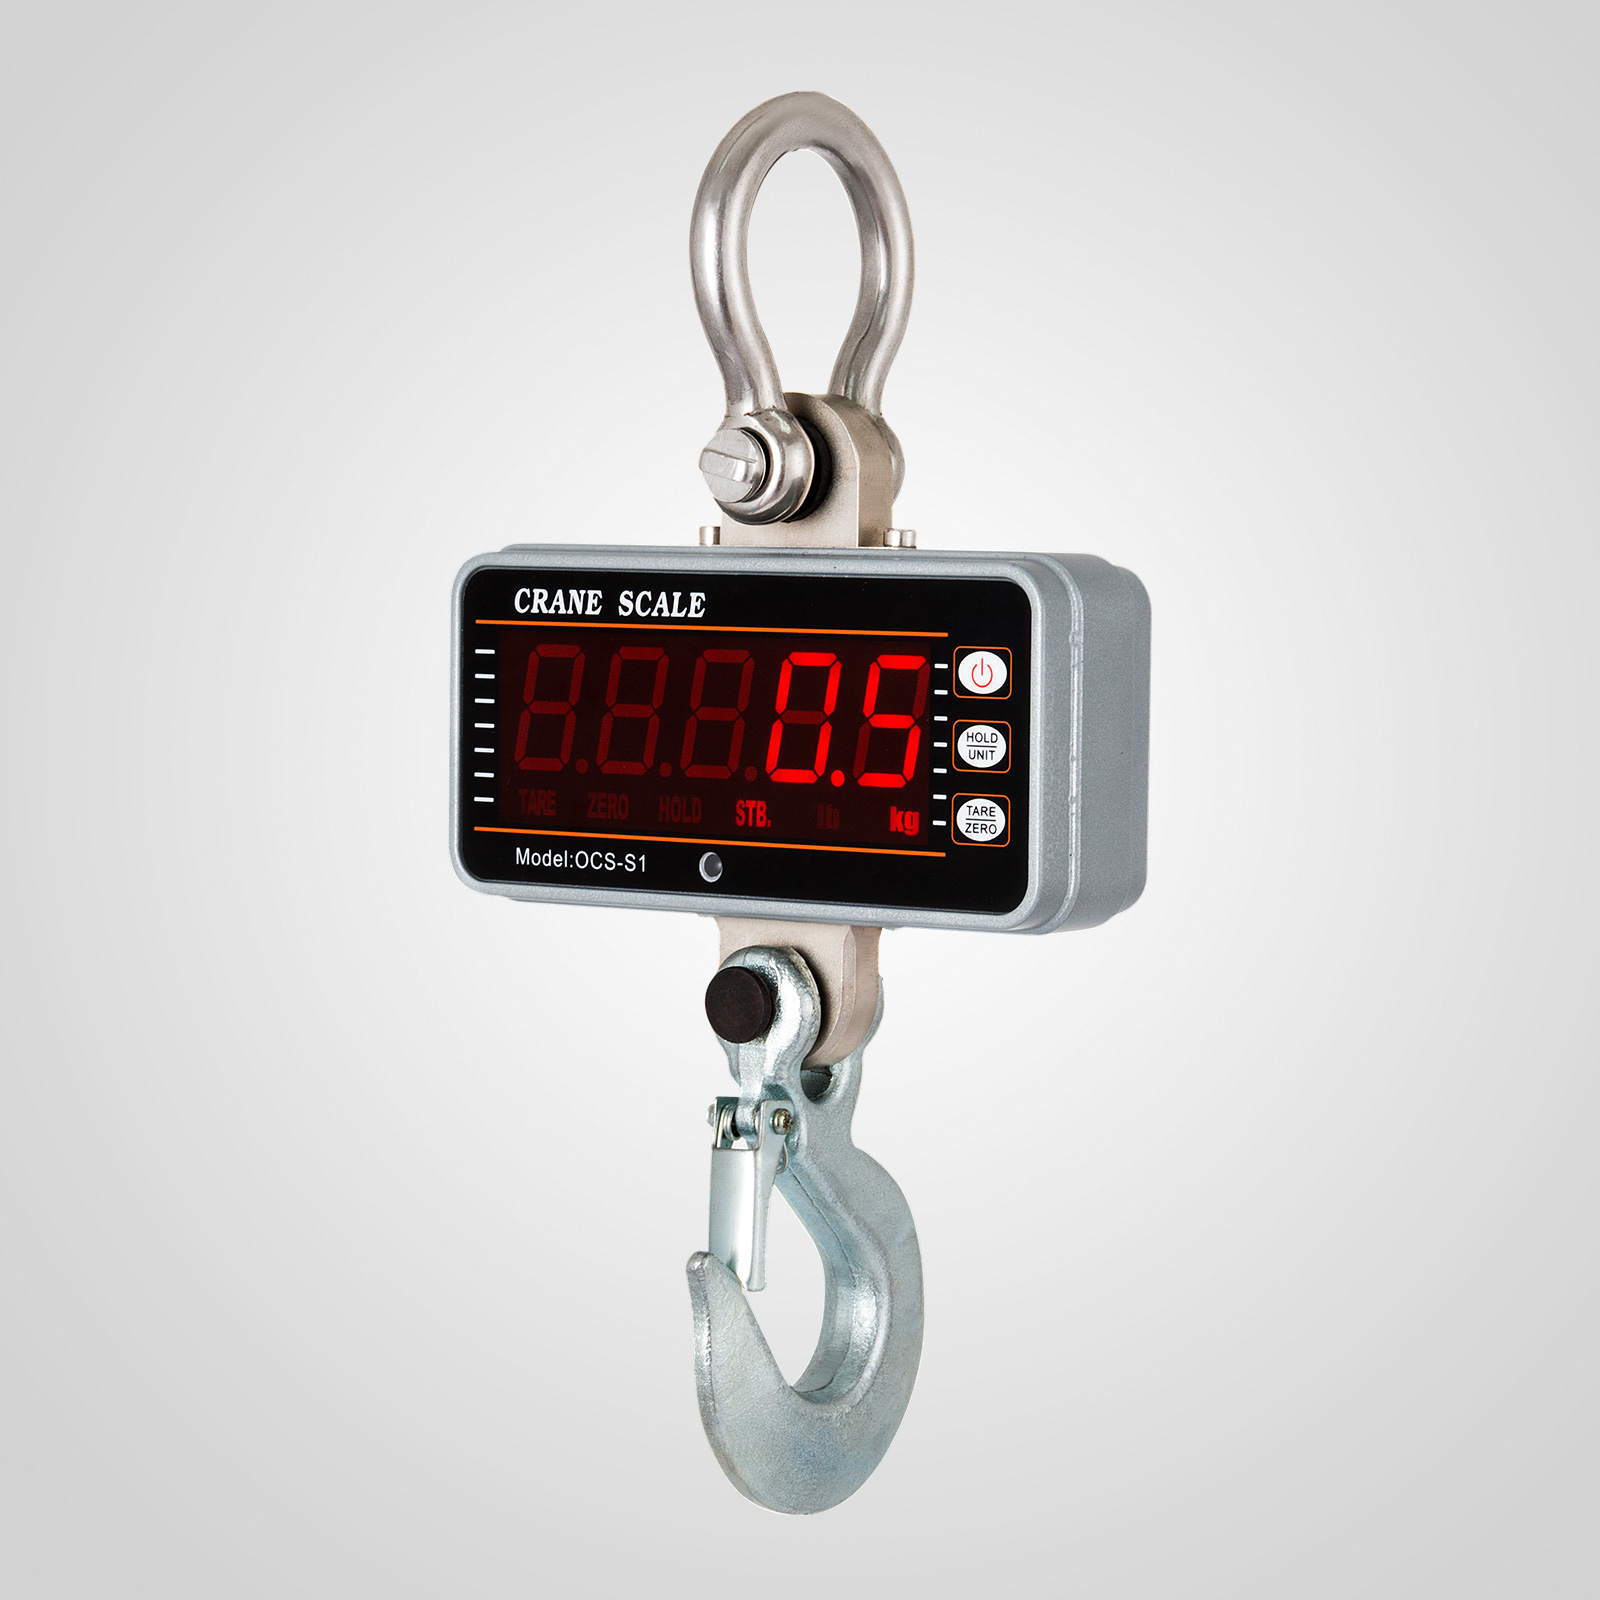 thumbnail 51 - 1T/3T/5T Digital Crane Scales Hanging Scale Electronic Scales Accurate Sensitive